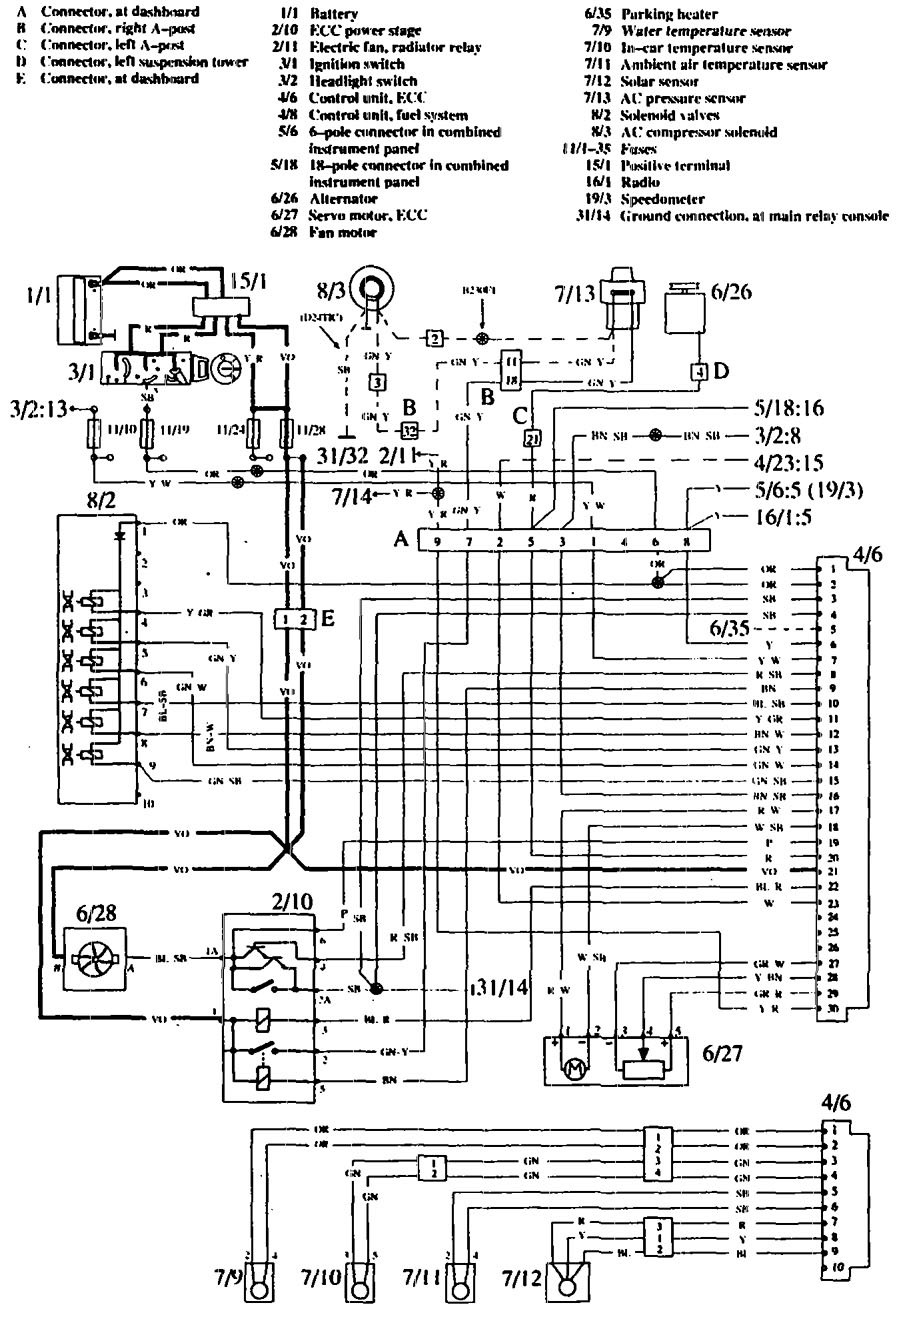 medium resolution of 1990 volvo 740 gle wagon engine diagram wiring wiring diagrams yeszz 1990 volvo 740 gle wagon engine diagram wiring